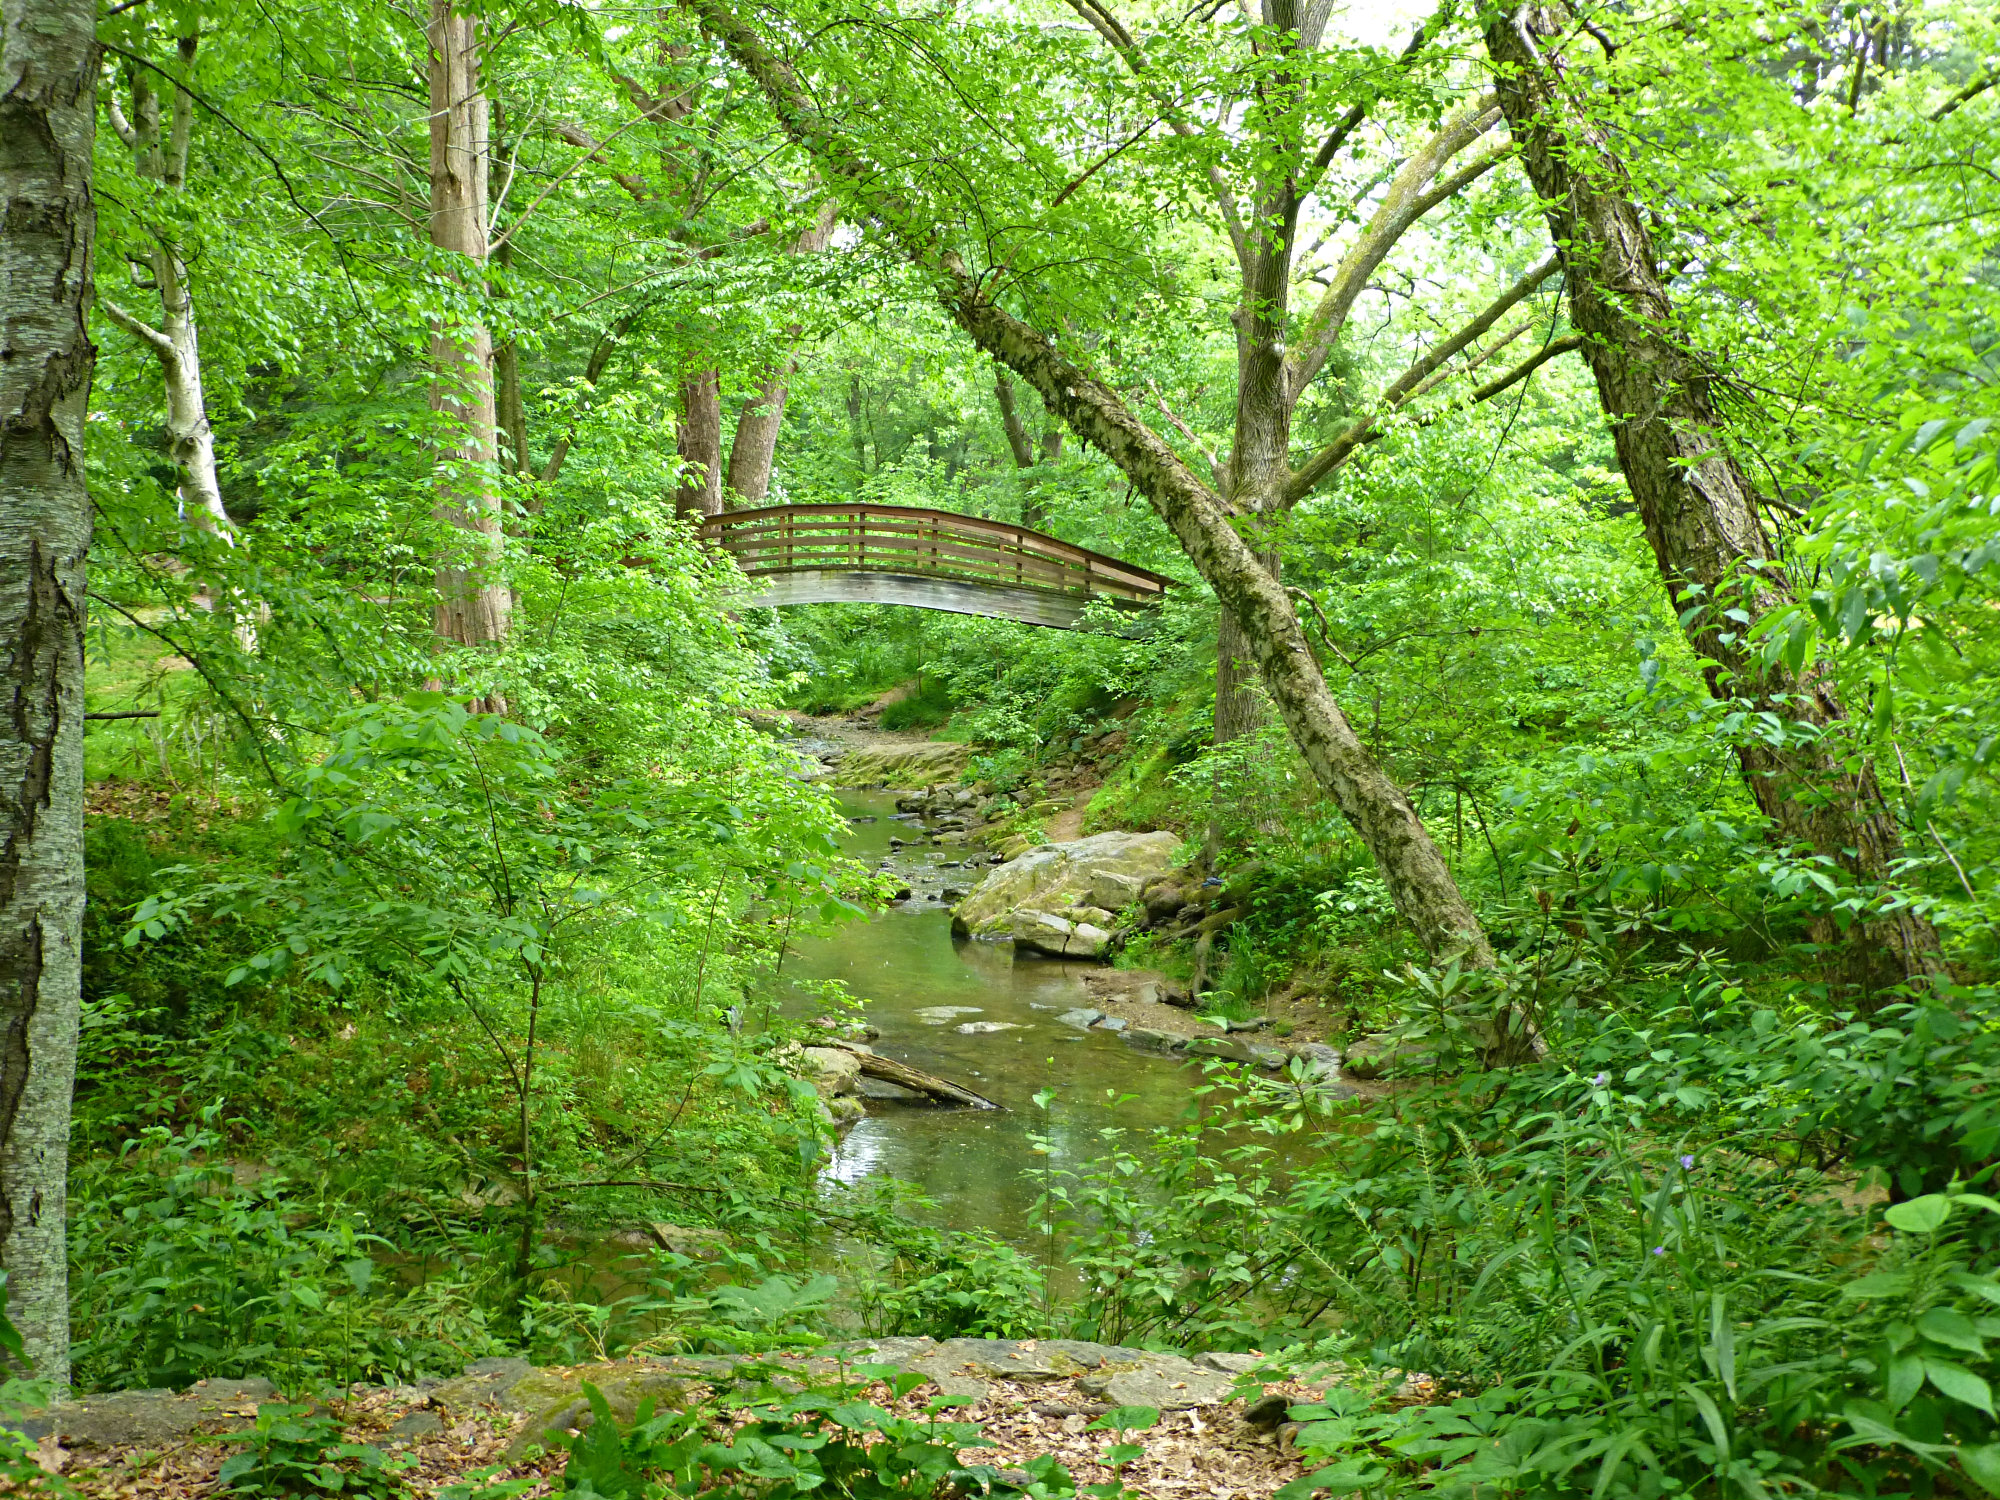 Stream surrounded by plants and trees with arched bridge in the background